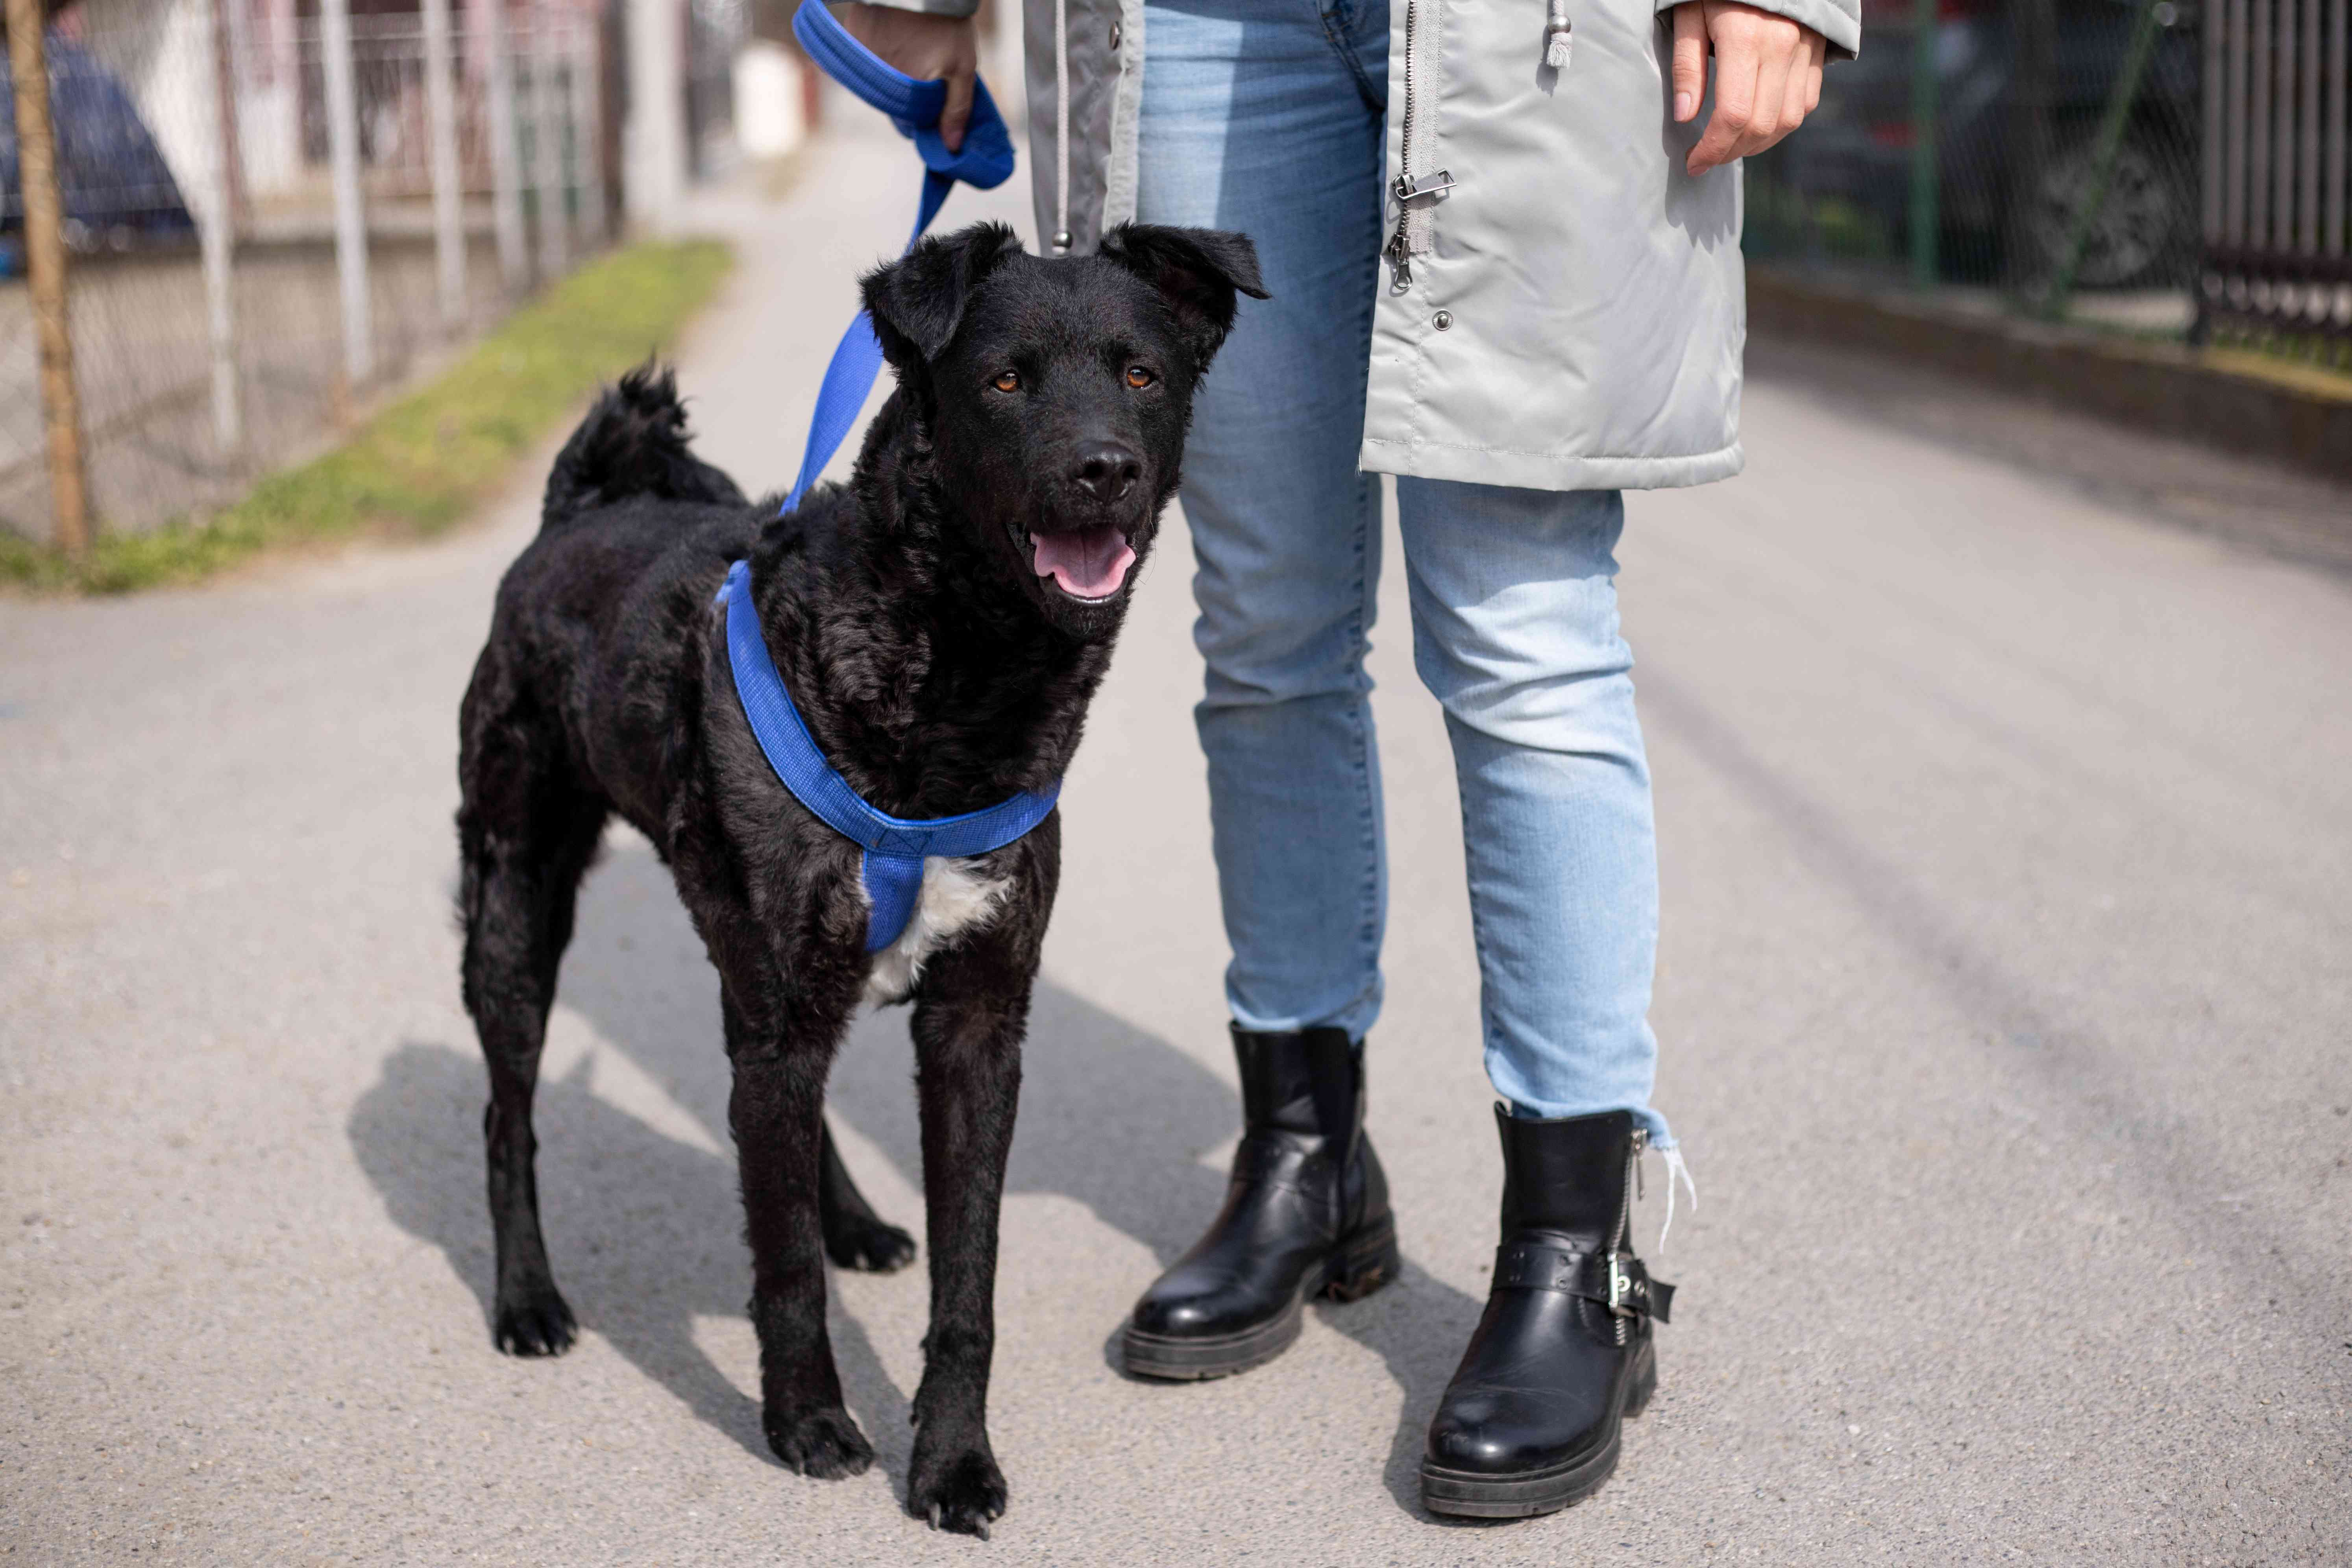 person in coat and boots walks black dog with blue harness outside